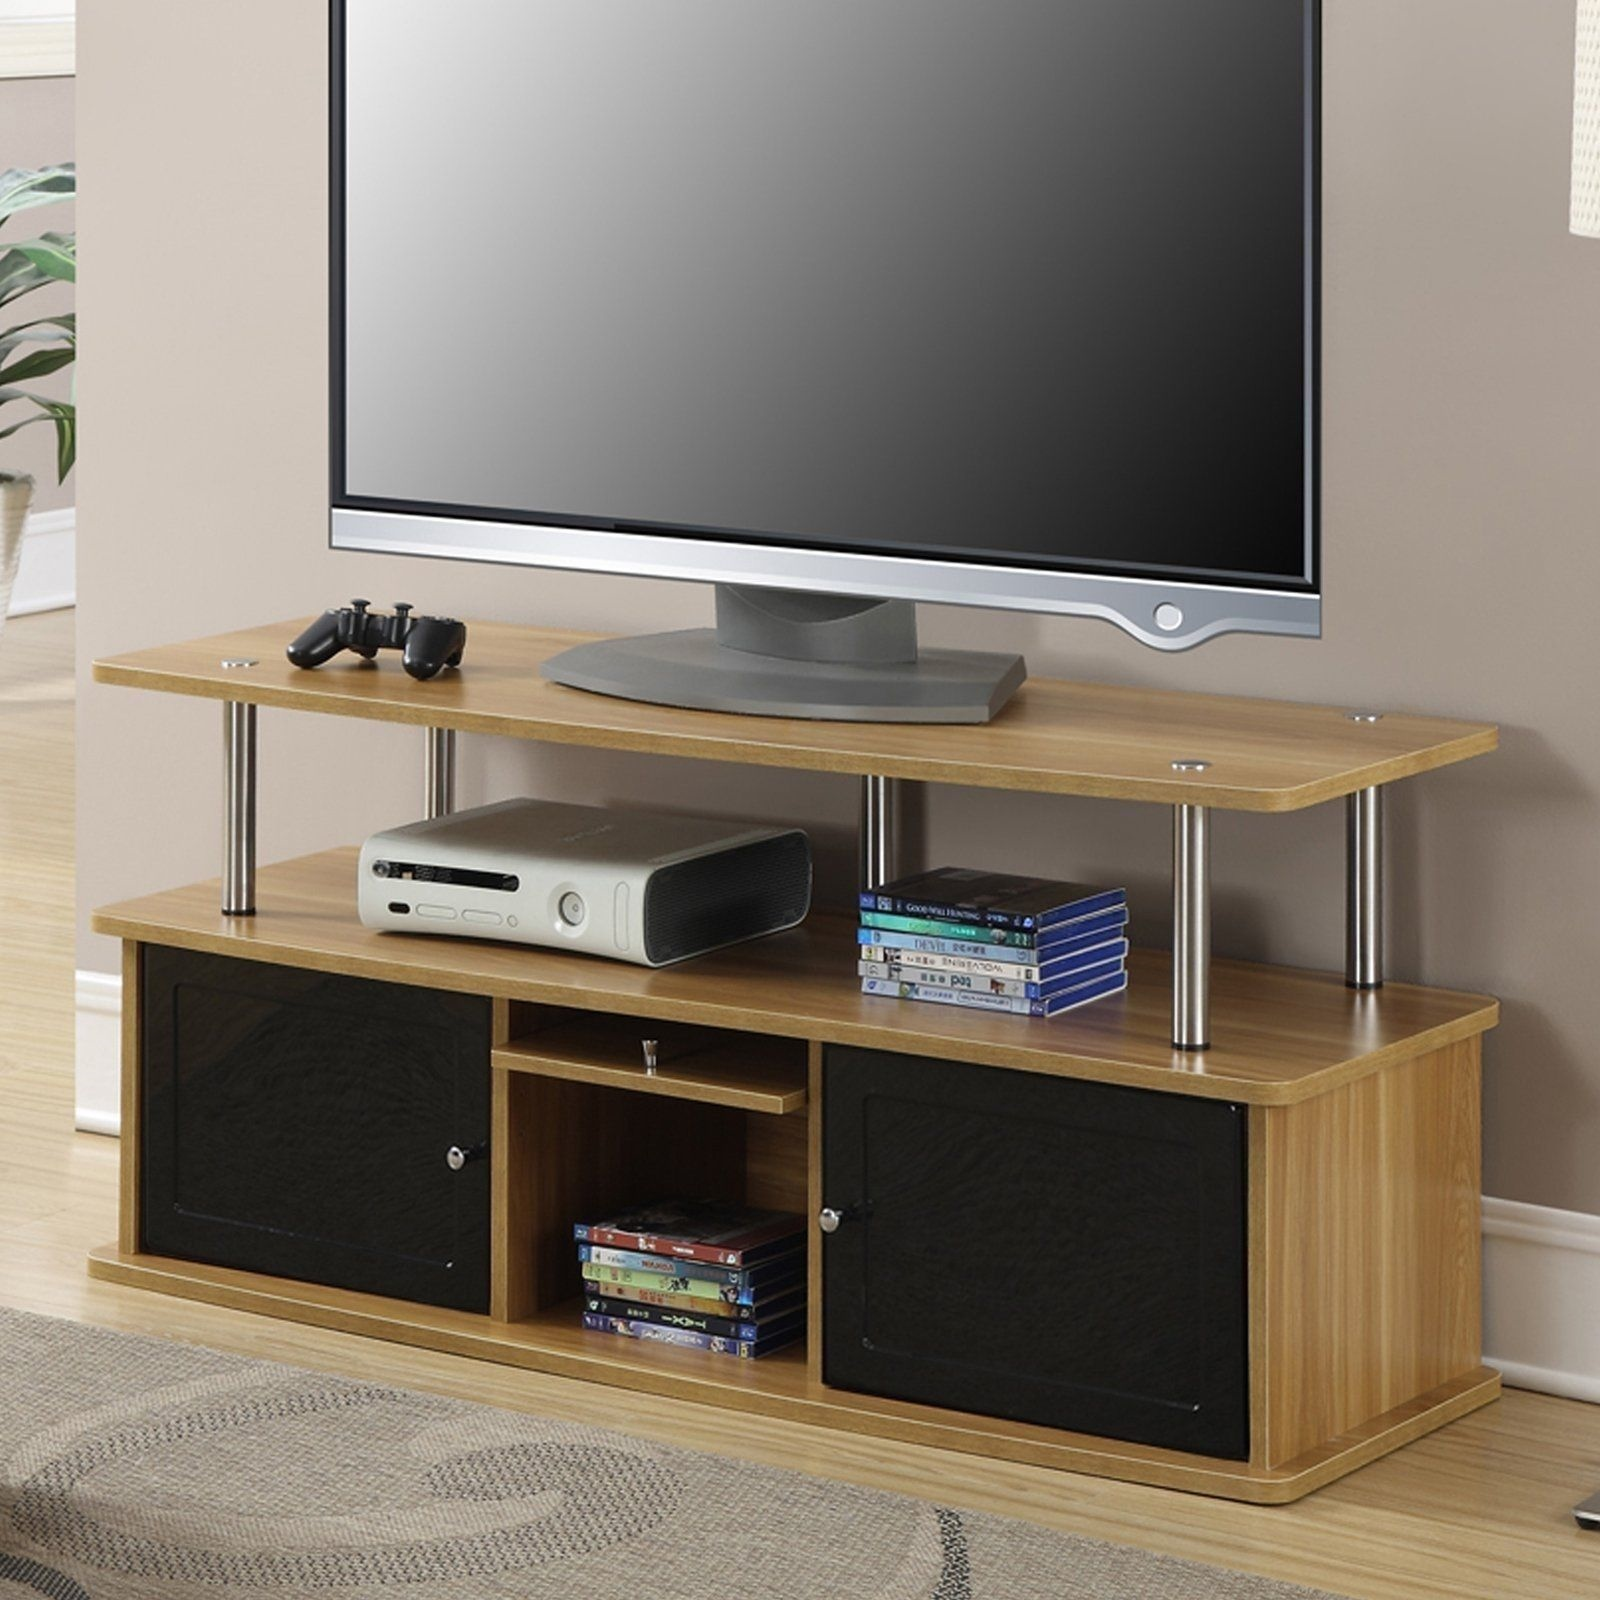 NEW TV Stand Oak Home Entertainment Media Storage Cabinet